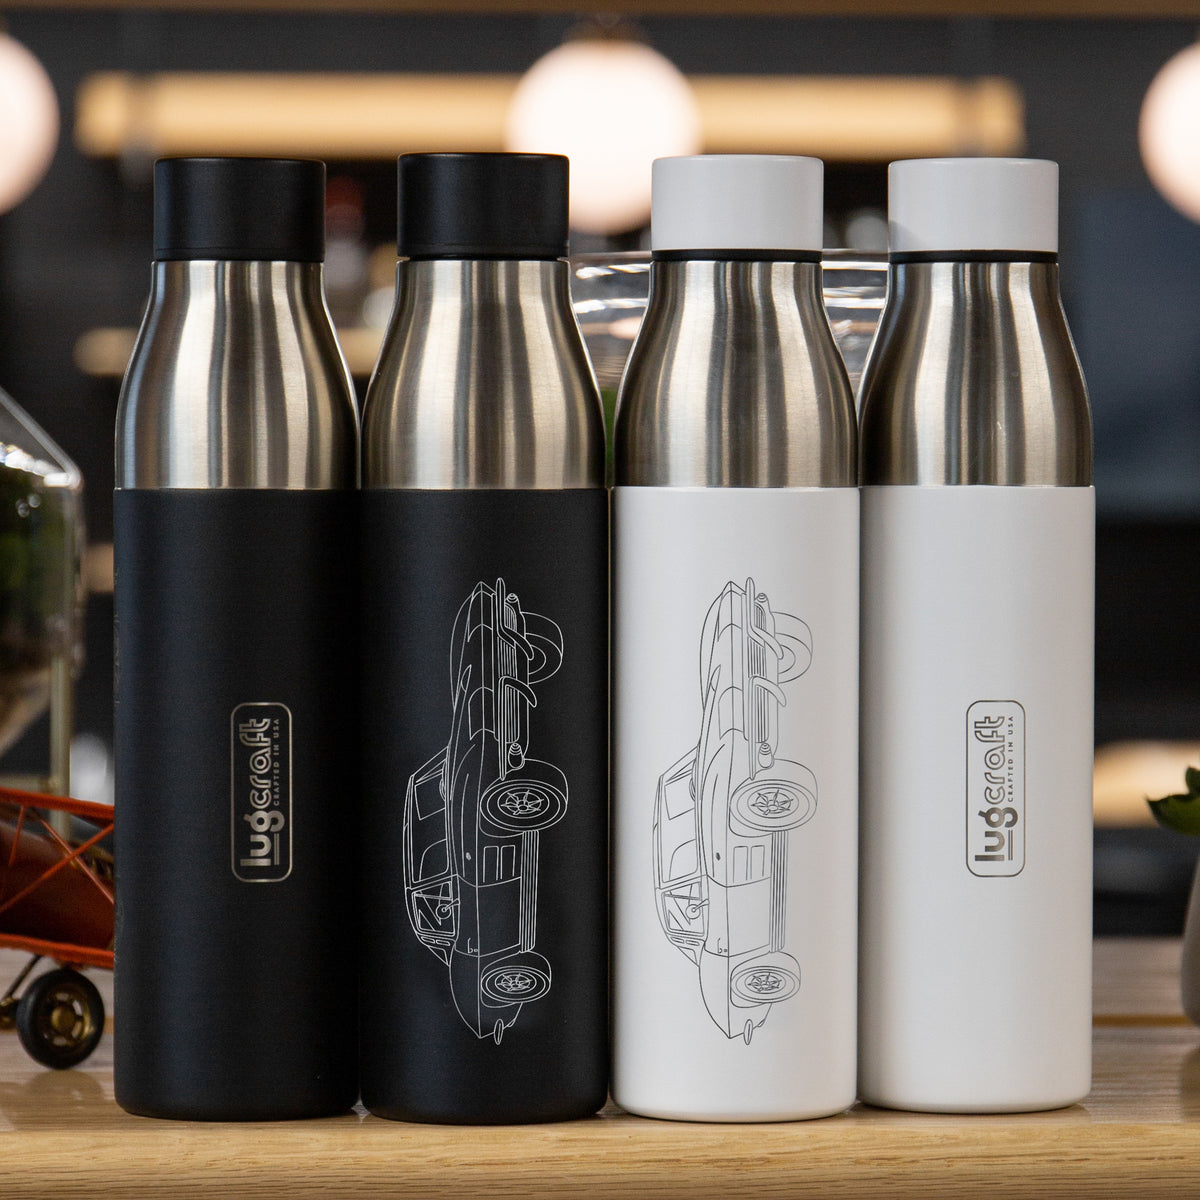 Chevy Corvette C2 Stingray 1963 Insulated Stainless Steel Water Bottle - 21 oz